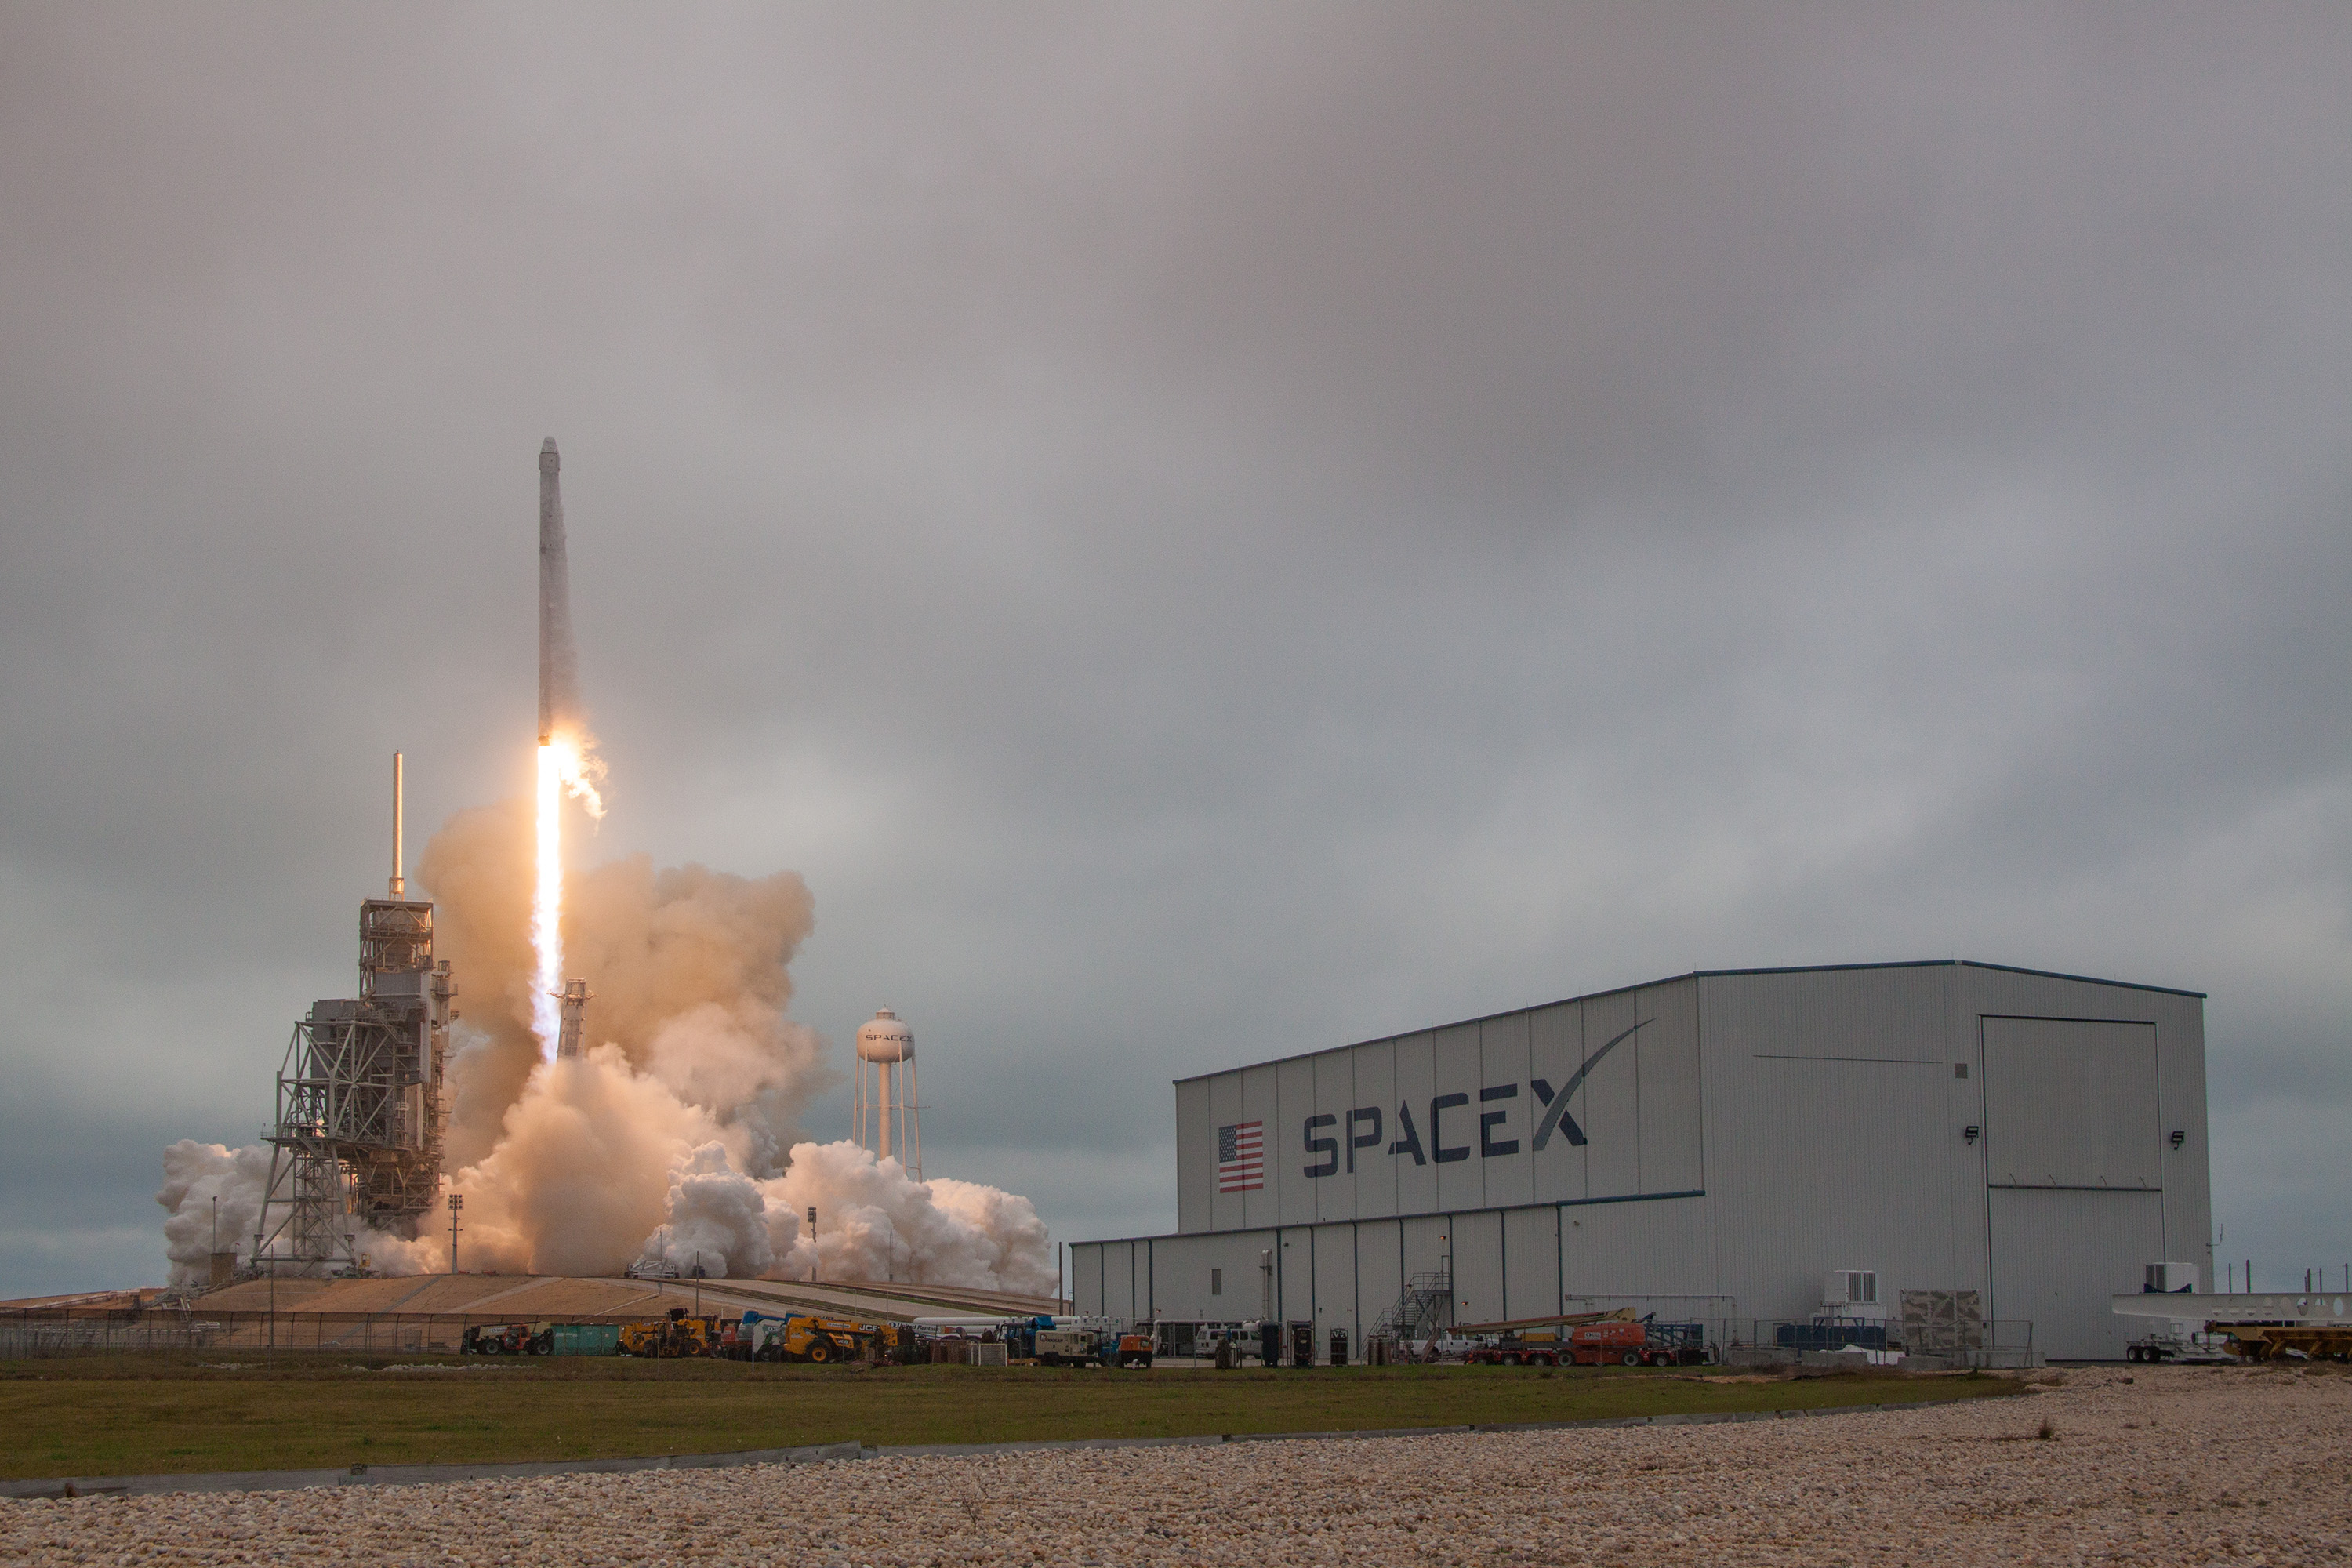 SpaceX Launches 1st Private Rocket from Historic NASA Pad